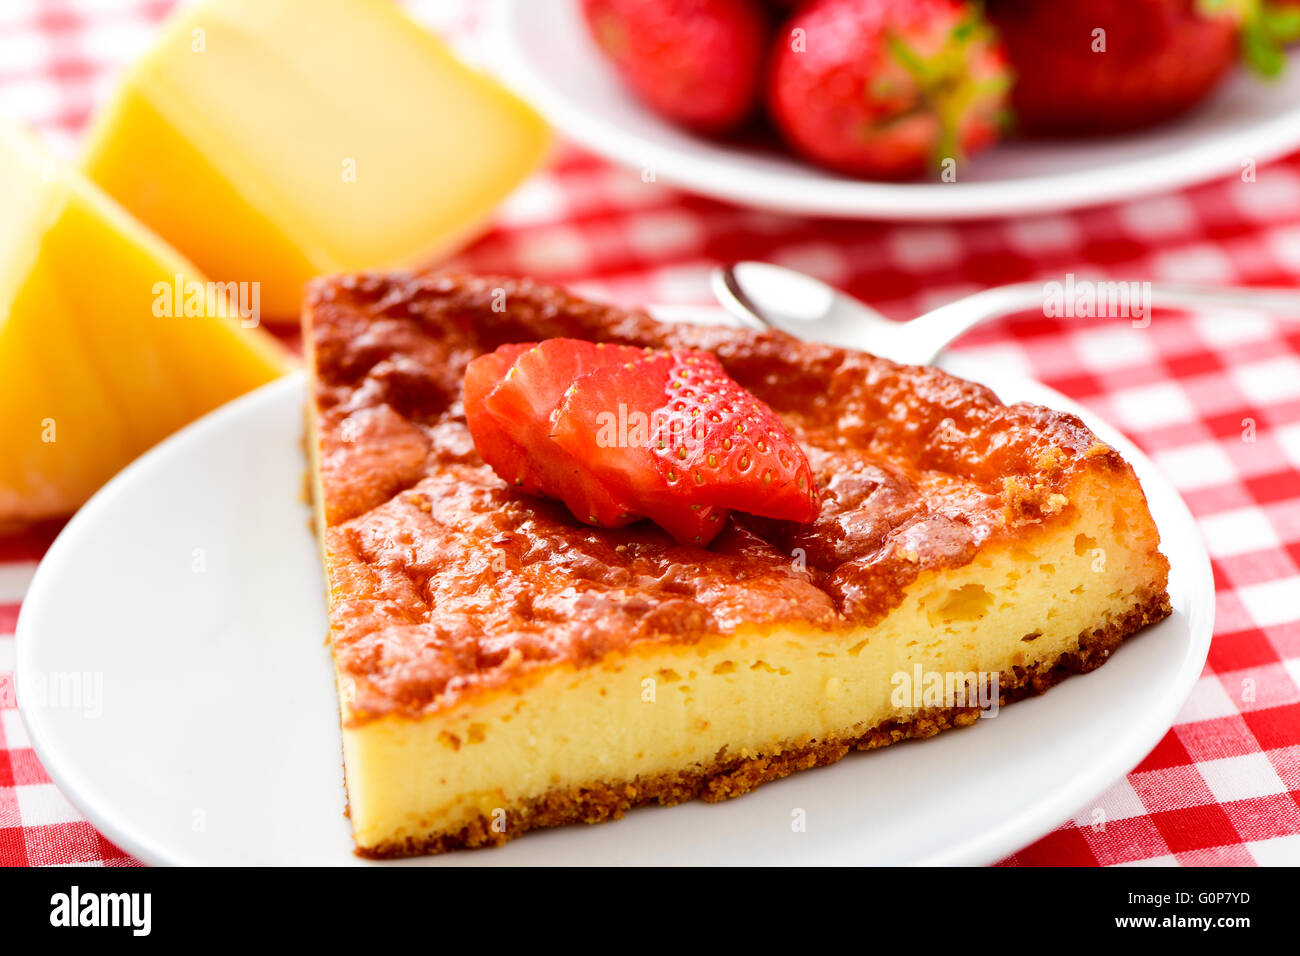 closeup of a plate with a piece of homemade cheesecake topped with sliced strawberry on a table set with a checkered - Stock Image